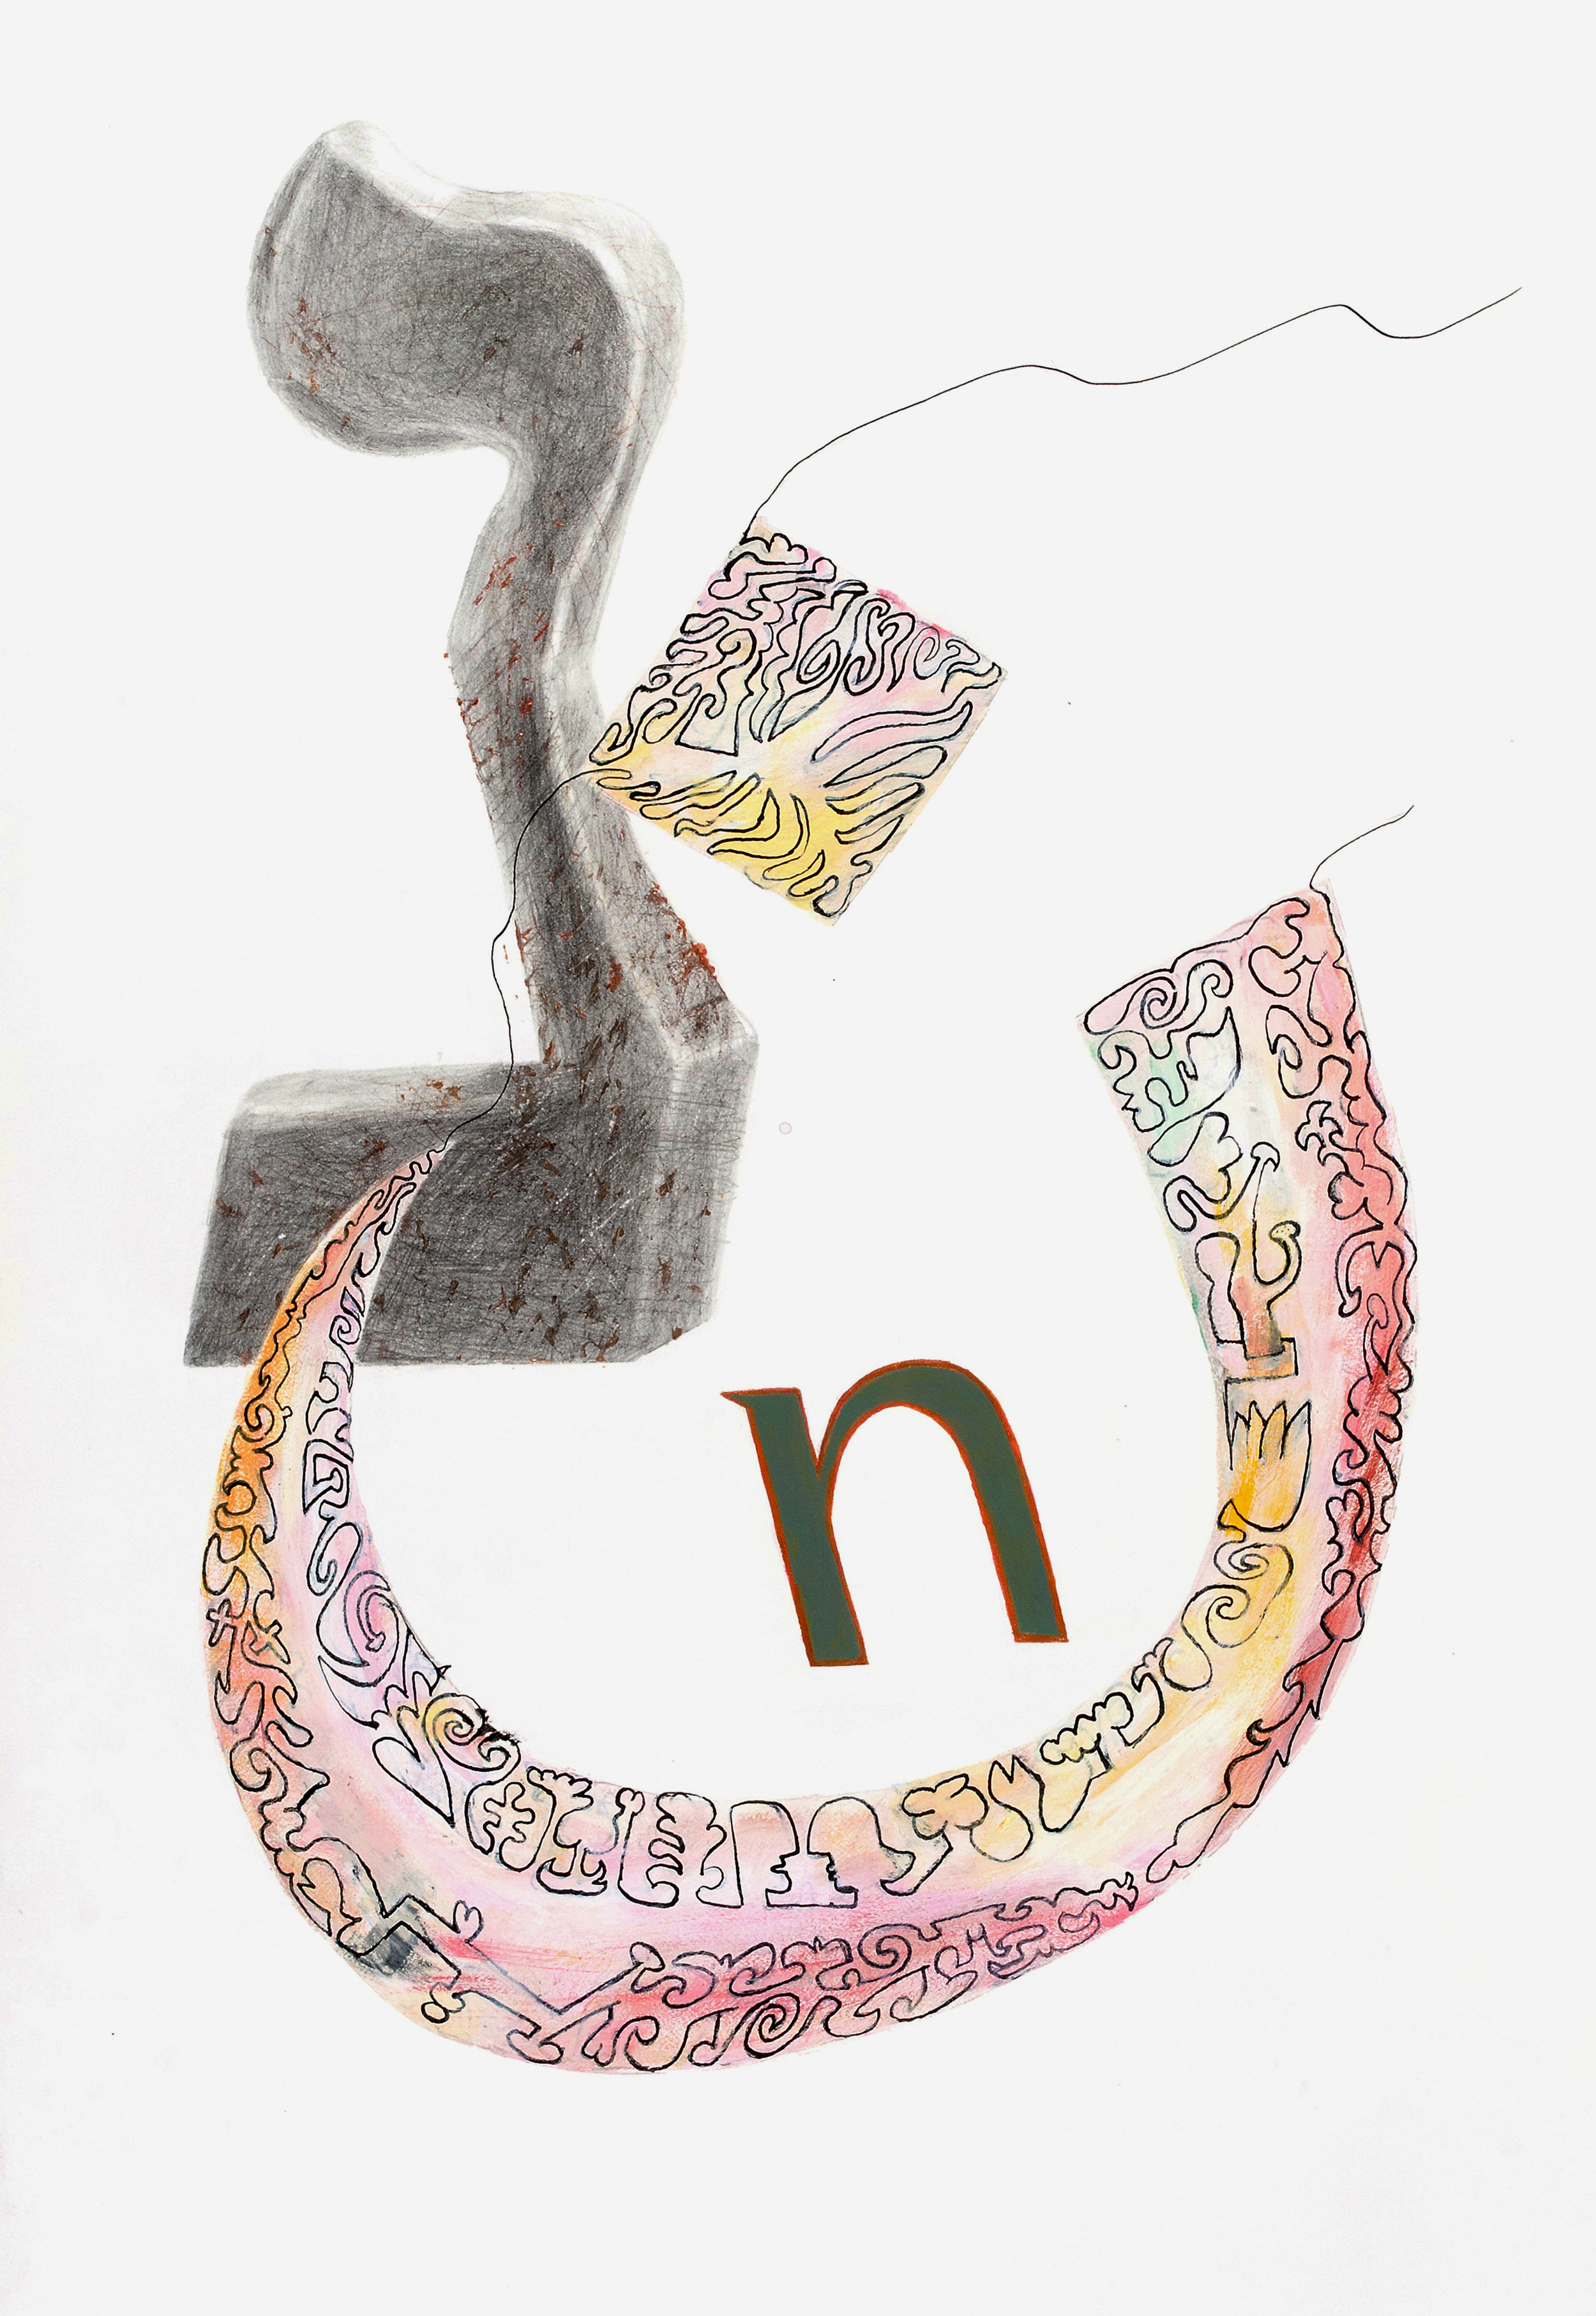 Joel Moskowitz,  Arabic  Nuun  and Hebrew  Nun , with N,  Mixed media on paper, 21x15